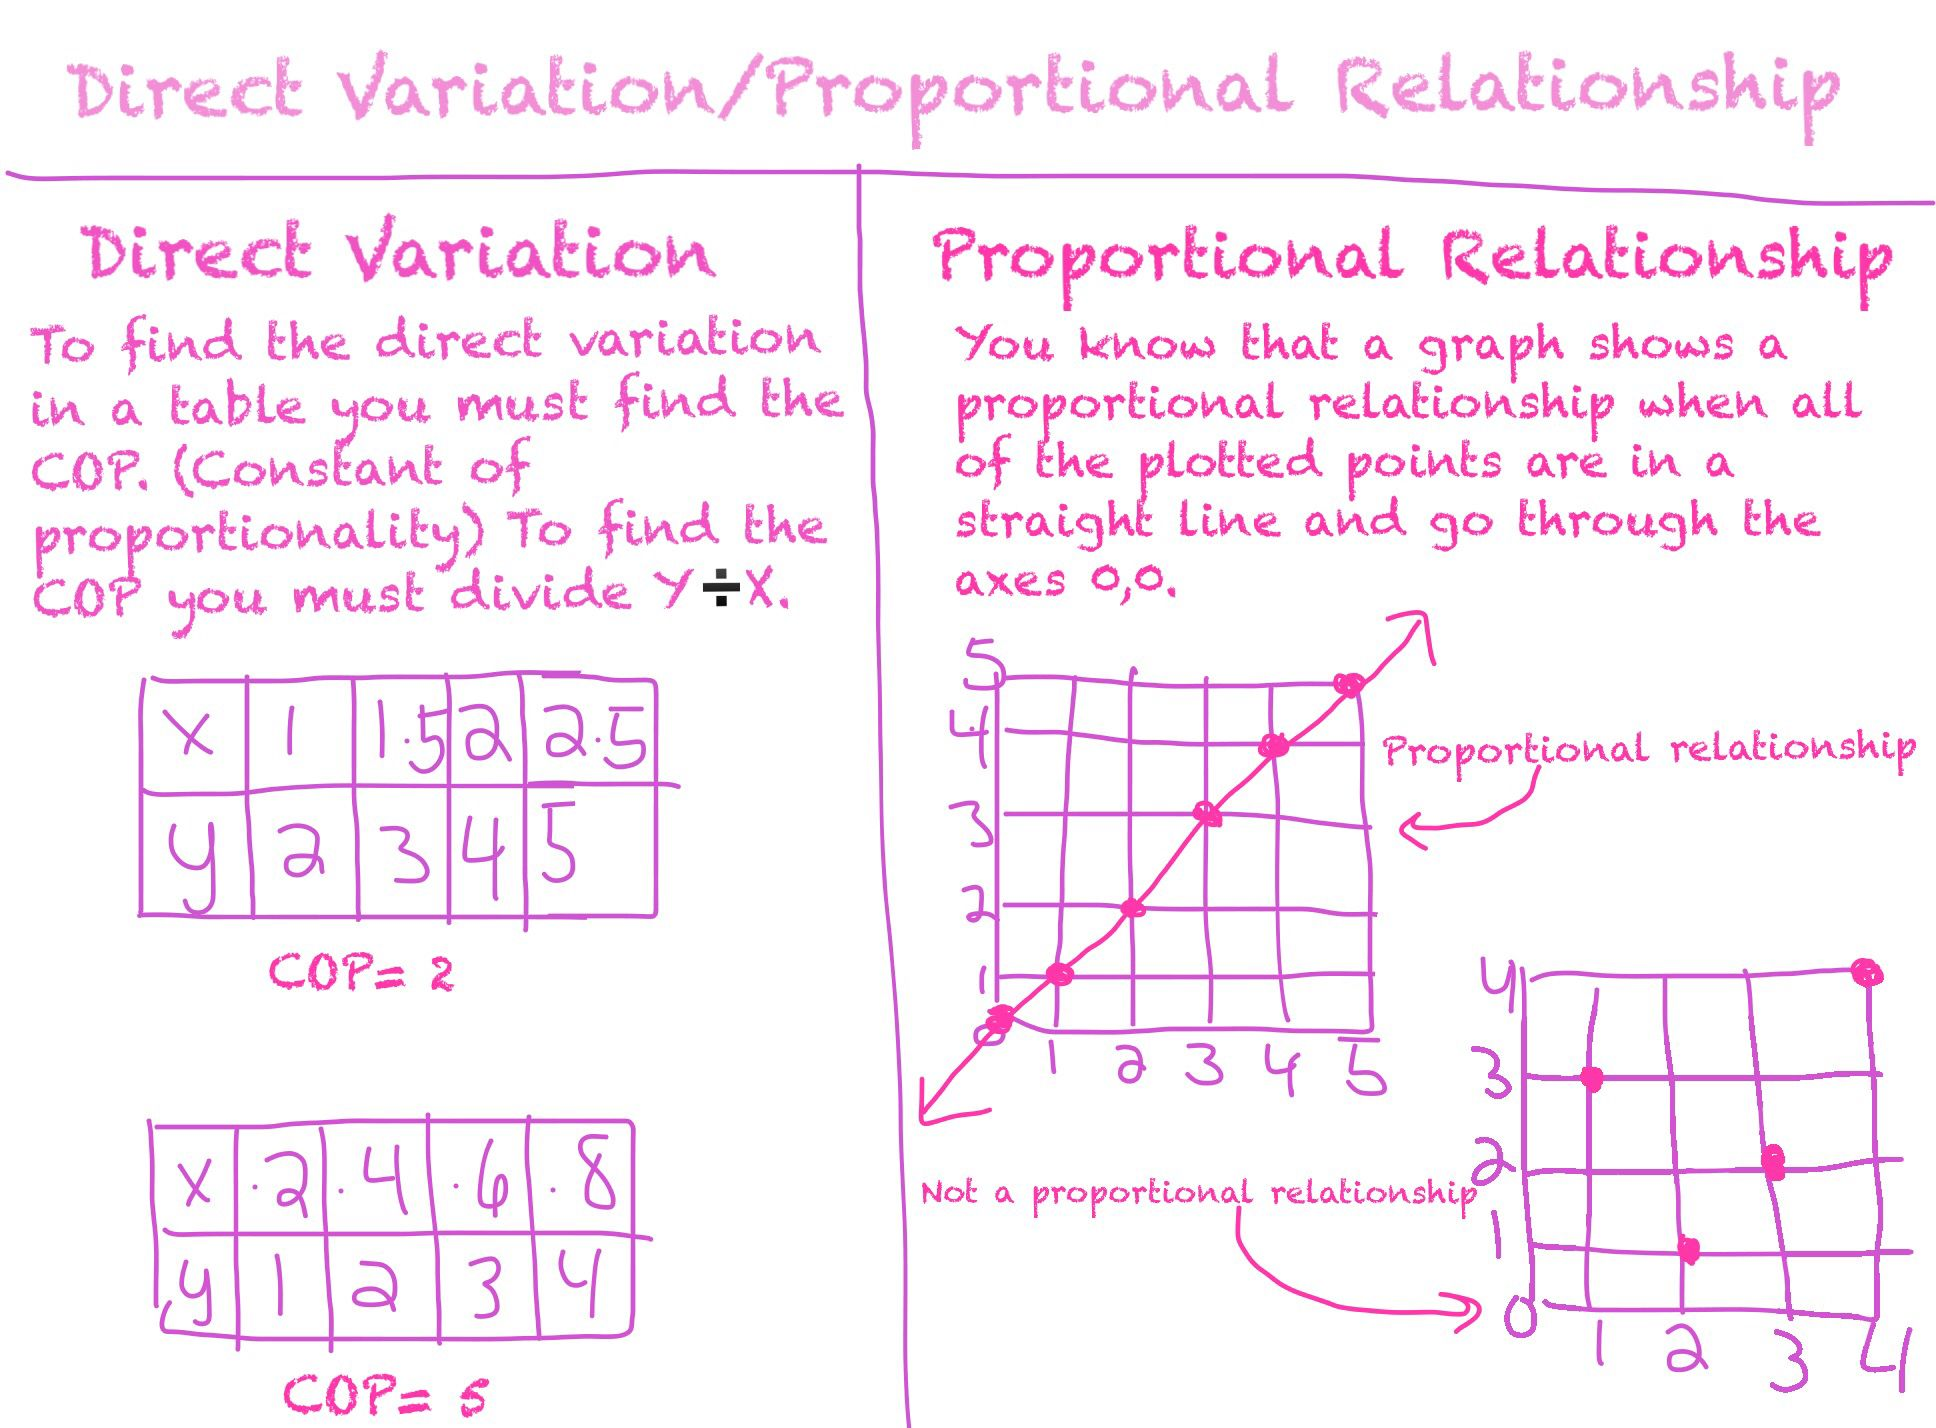 hight resolution of Direct Variation/Proportional Relationship   Direct variation